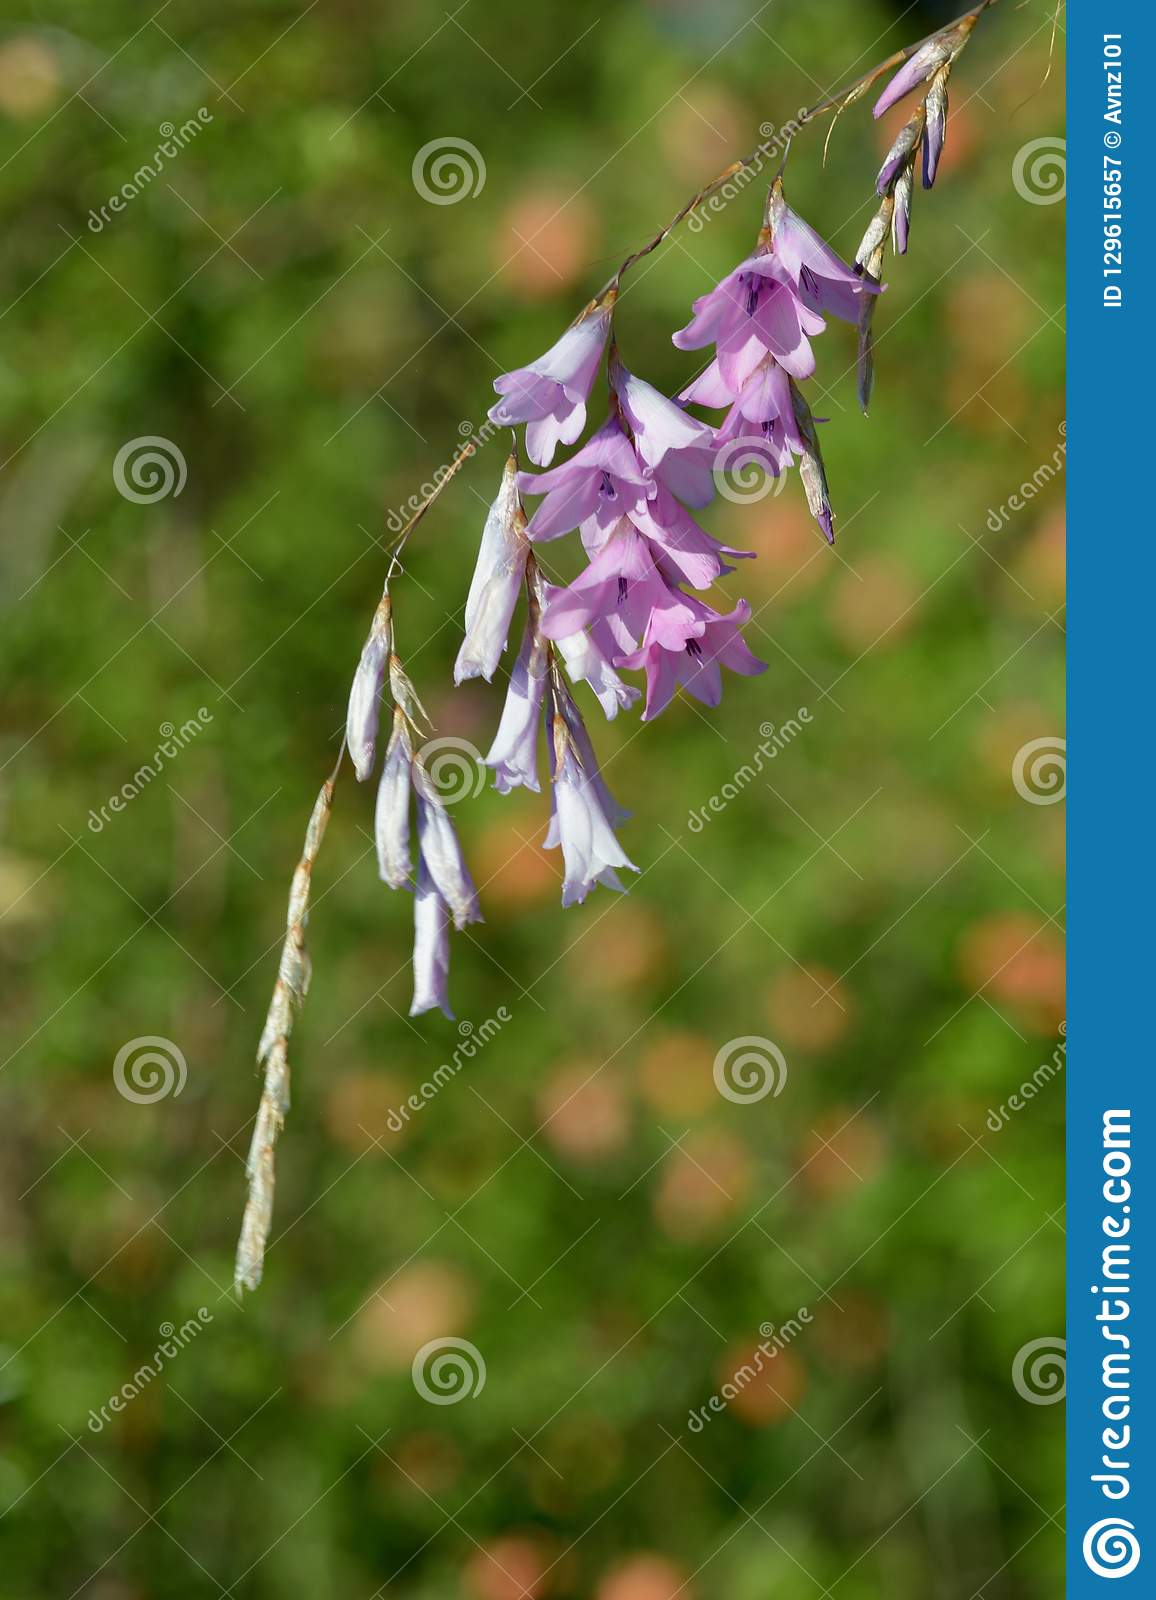 Hanging pink flowers, close up photo; flowering grass